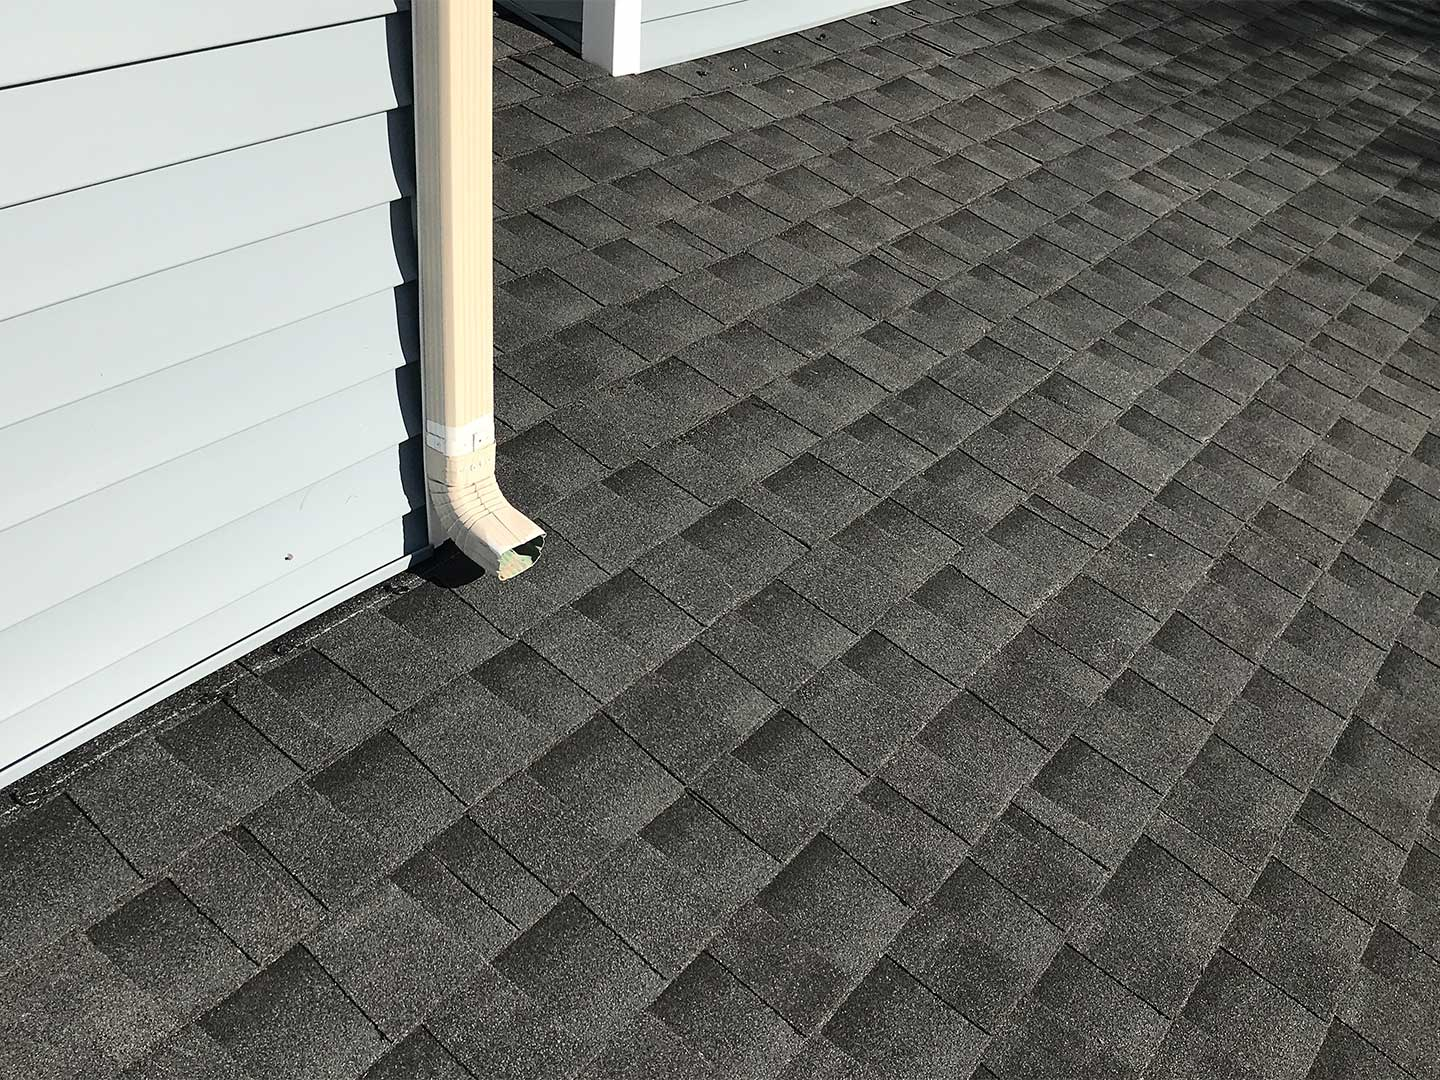 GAF asphalt shingles are a cost-effective and energy-efficient choice that looks great on any home.